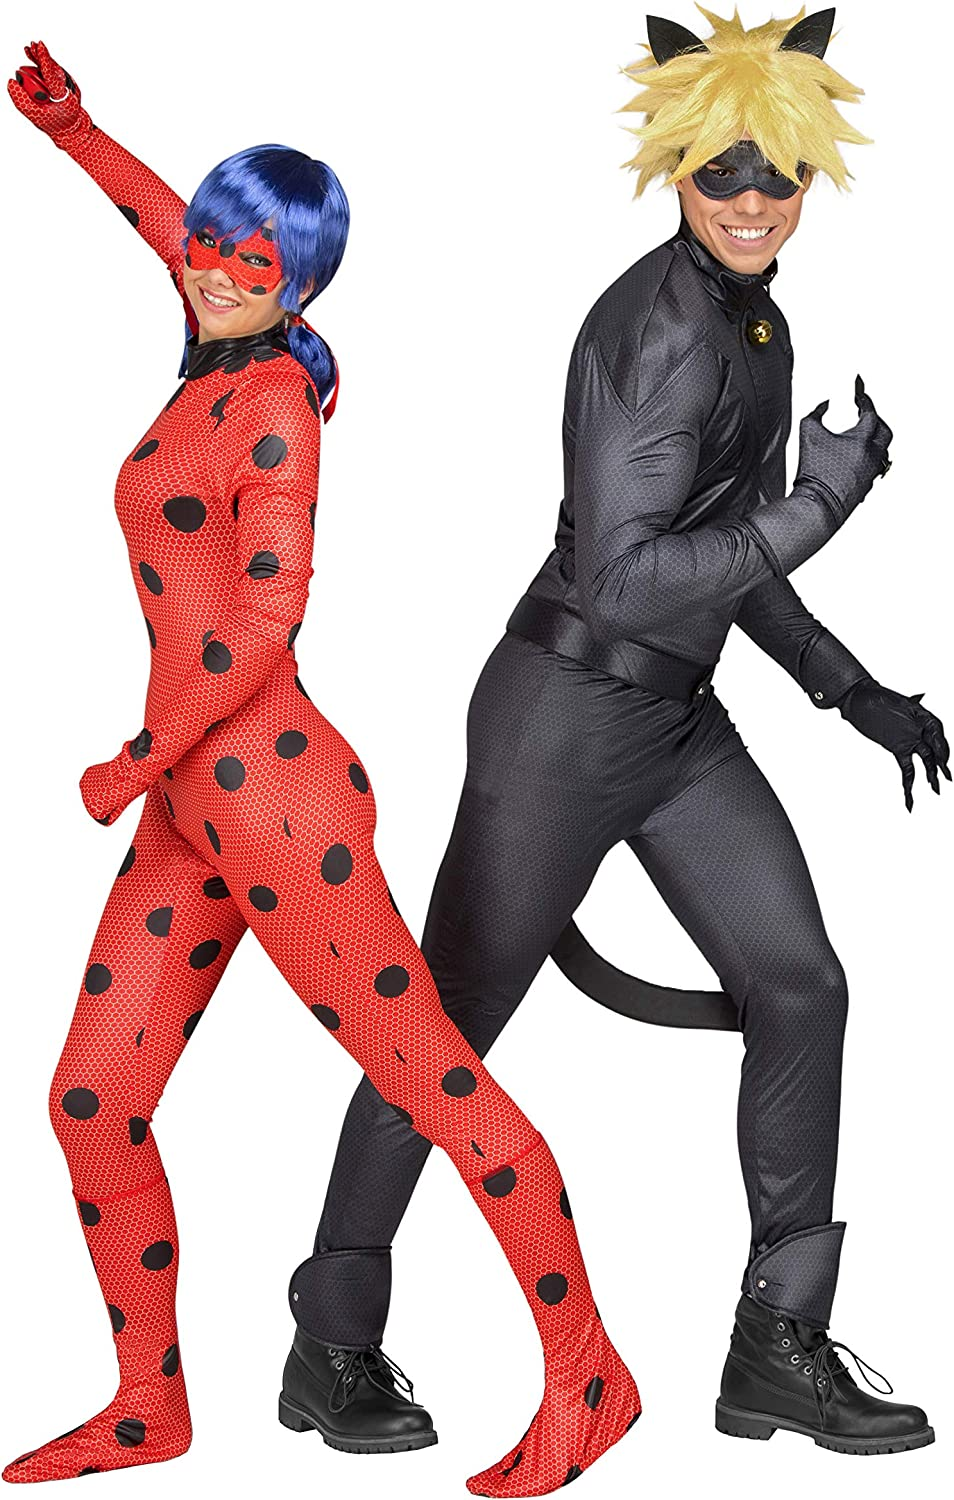 colore rosso My Other Me Me Ladybug Lady Bug costume 231161